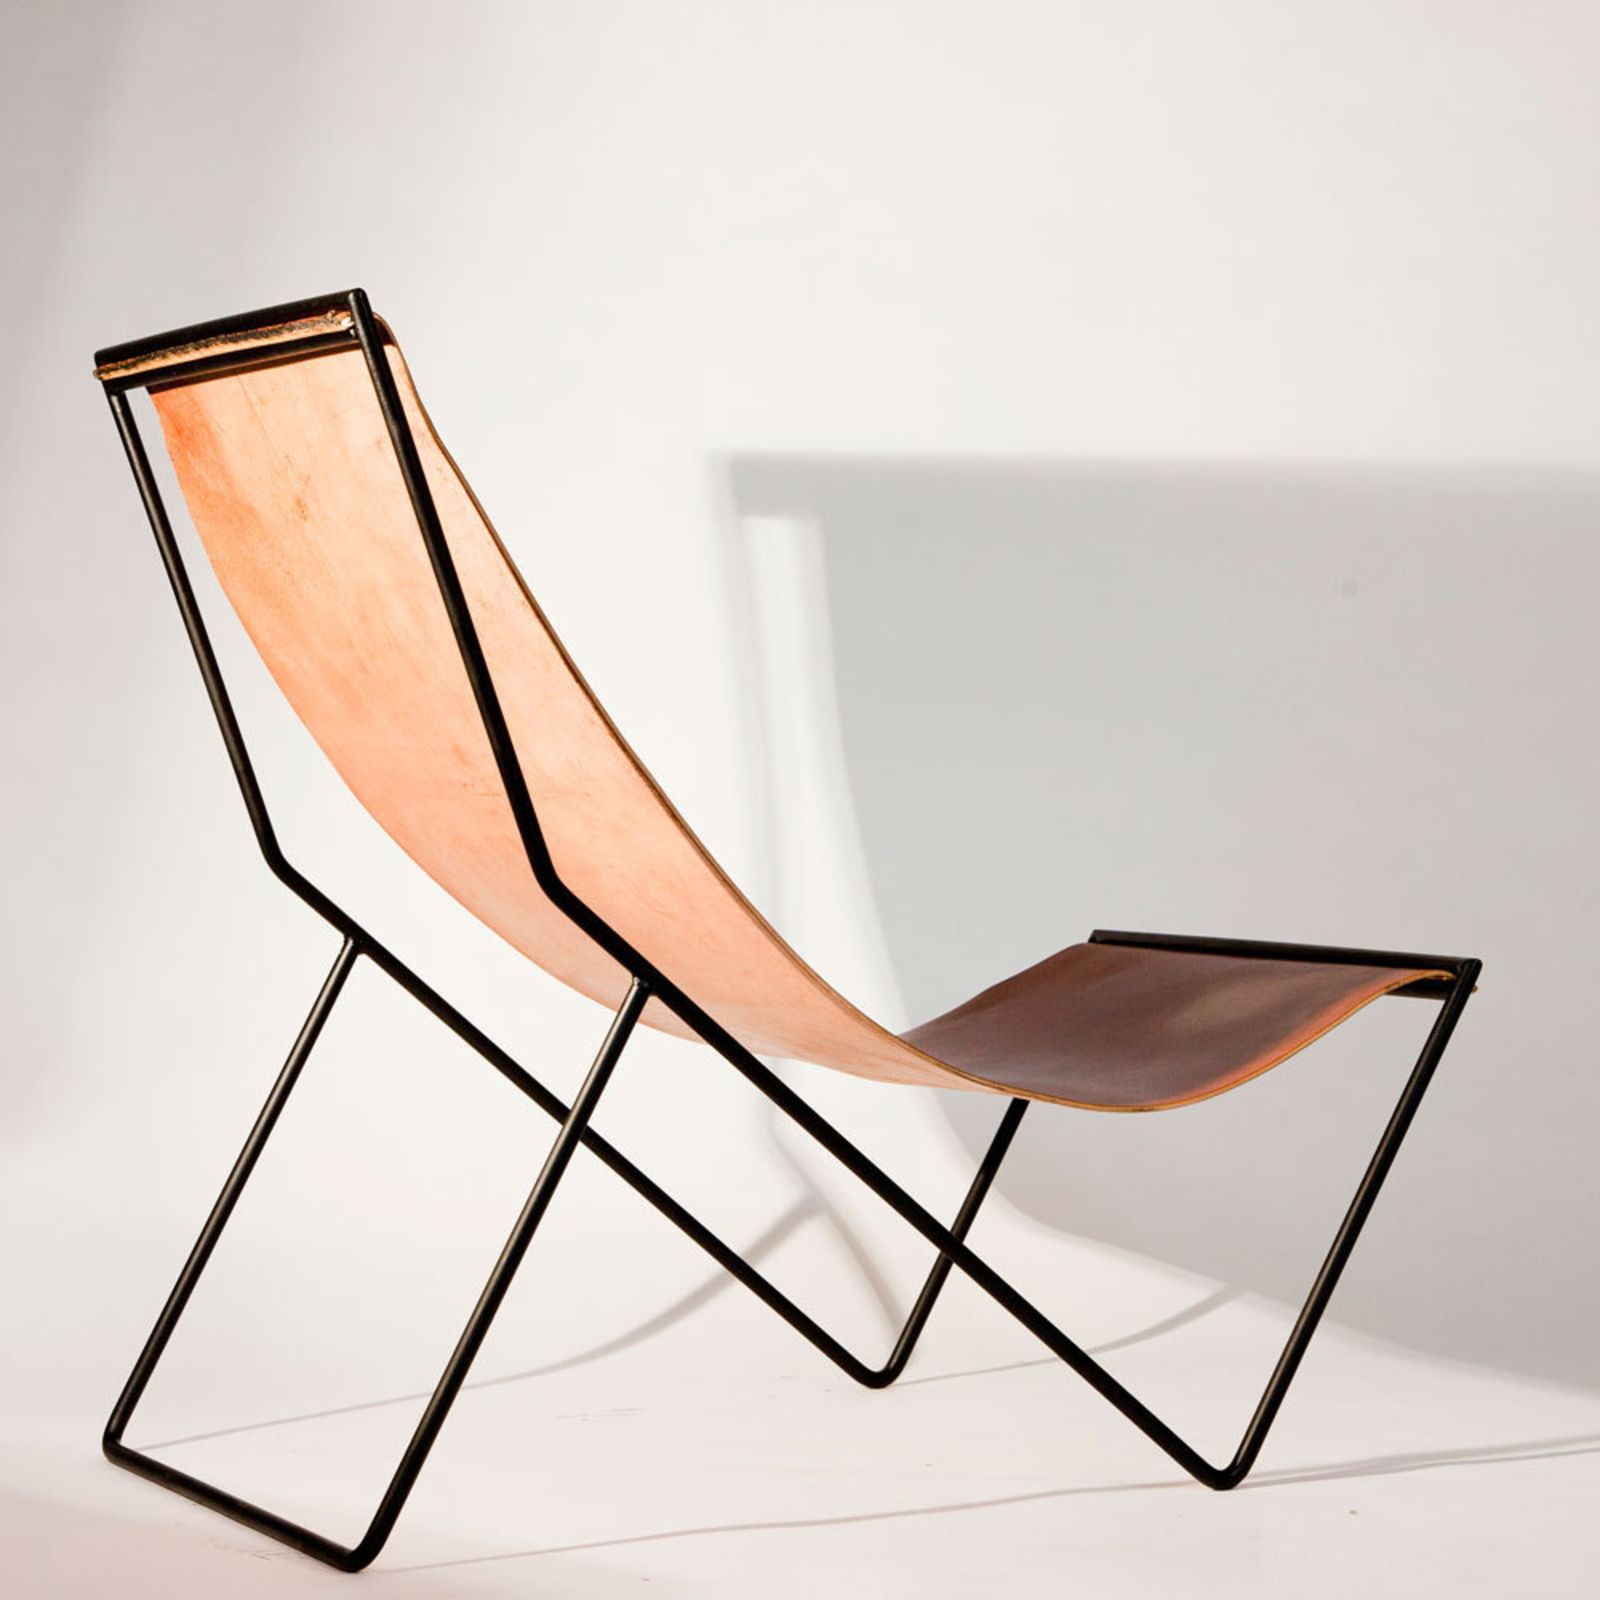 Sling Shots 7 Ways to Design With the Versatile Sling Chair by Diana… is part of Furniture - Reduced in form, the Sit and Read Sling Chair by Kyle Garner boasts a refined silhouette  Sling Shots 7 Ways to Design With the Versatile Sling Chair by Diana Budds  Browse inspirational photos of modern homes